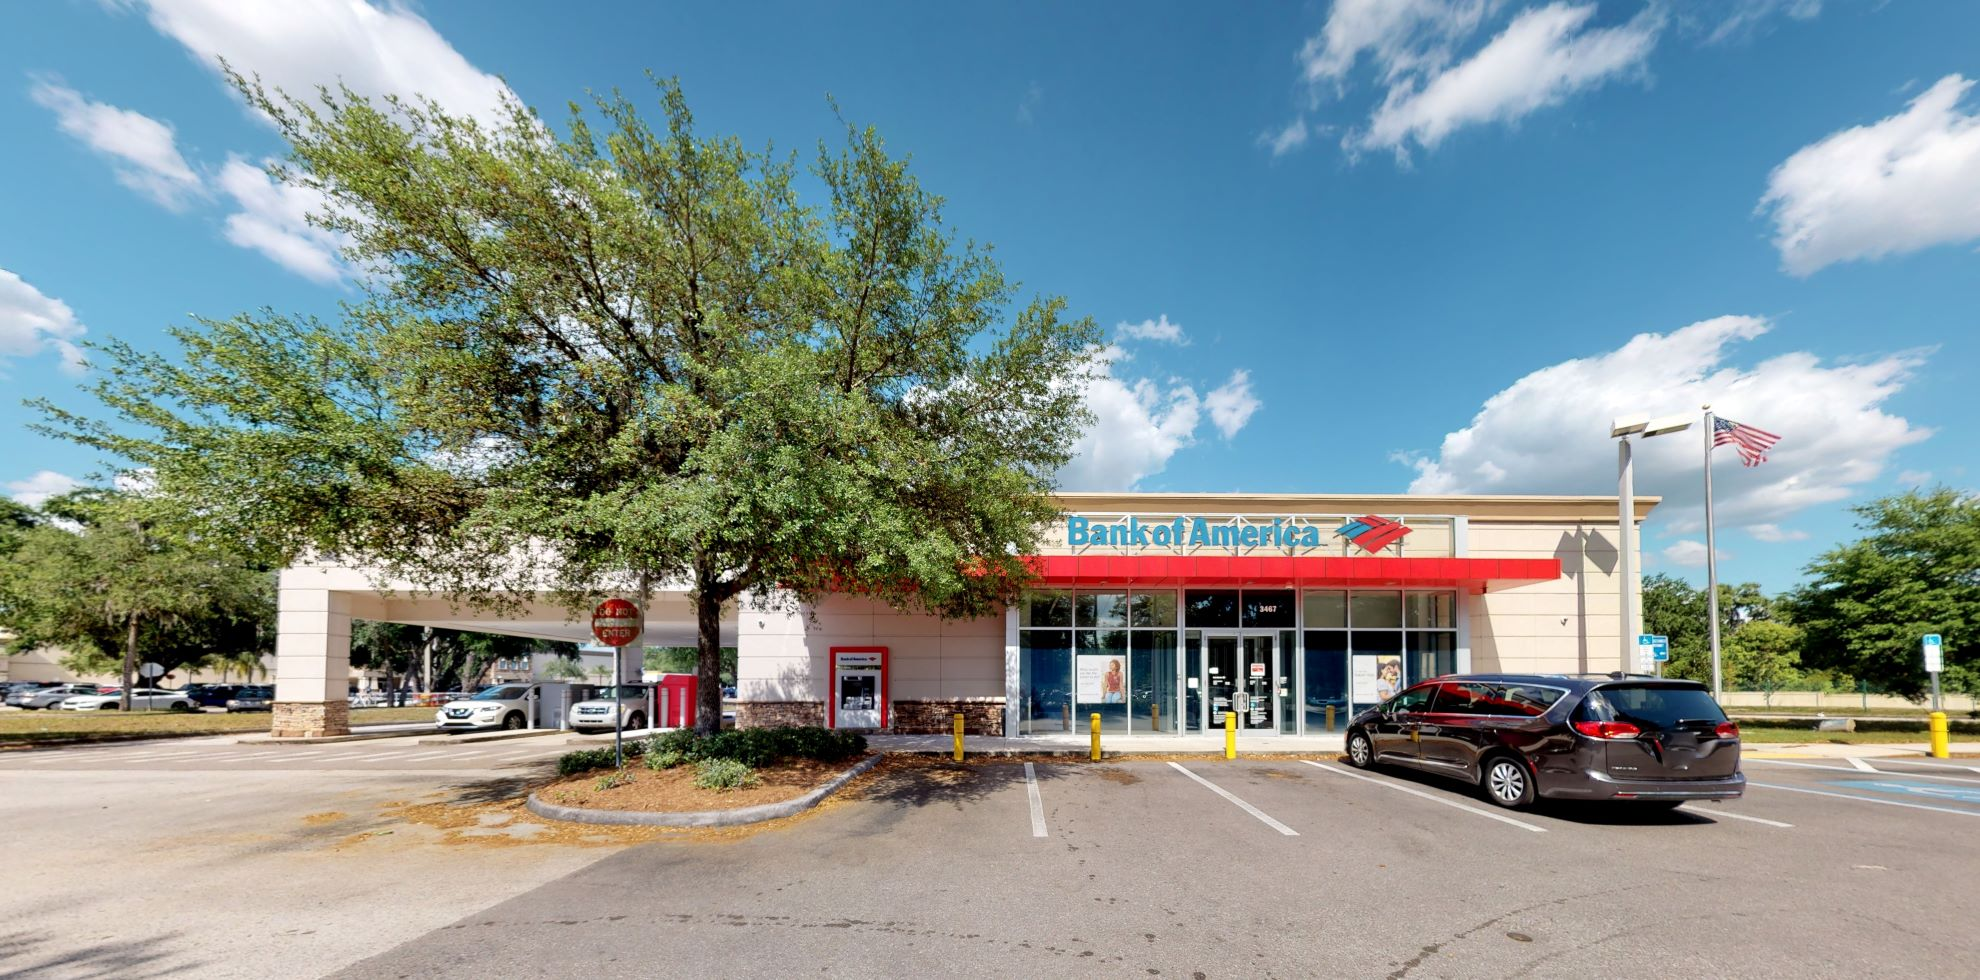 Bank of America financial center with drive-thru ATM   3467 Lithia Pinecrest Rd, Valrico, FL 33596